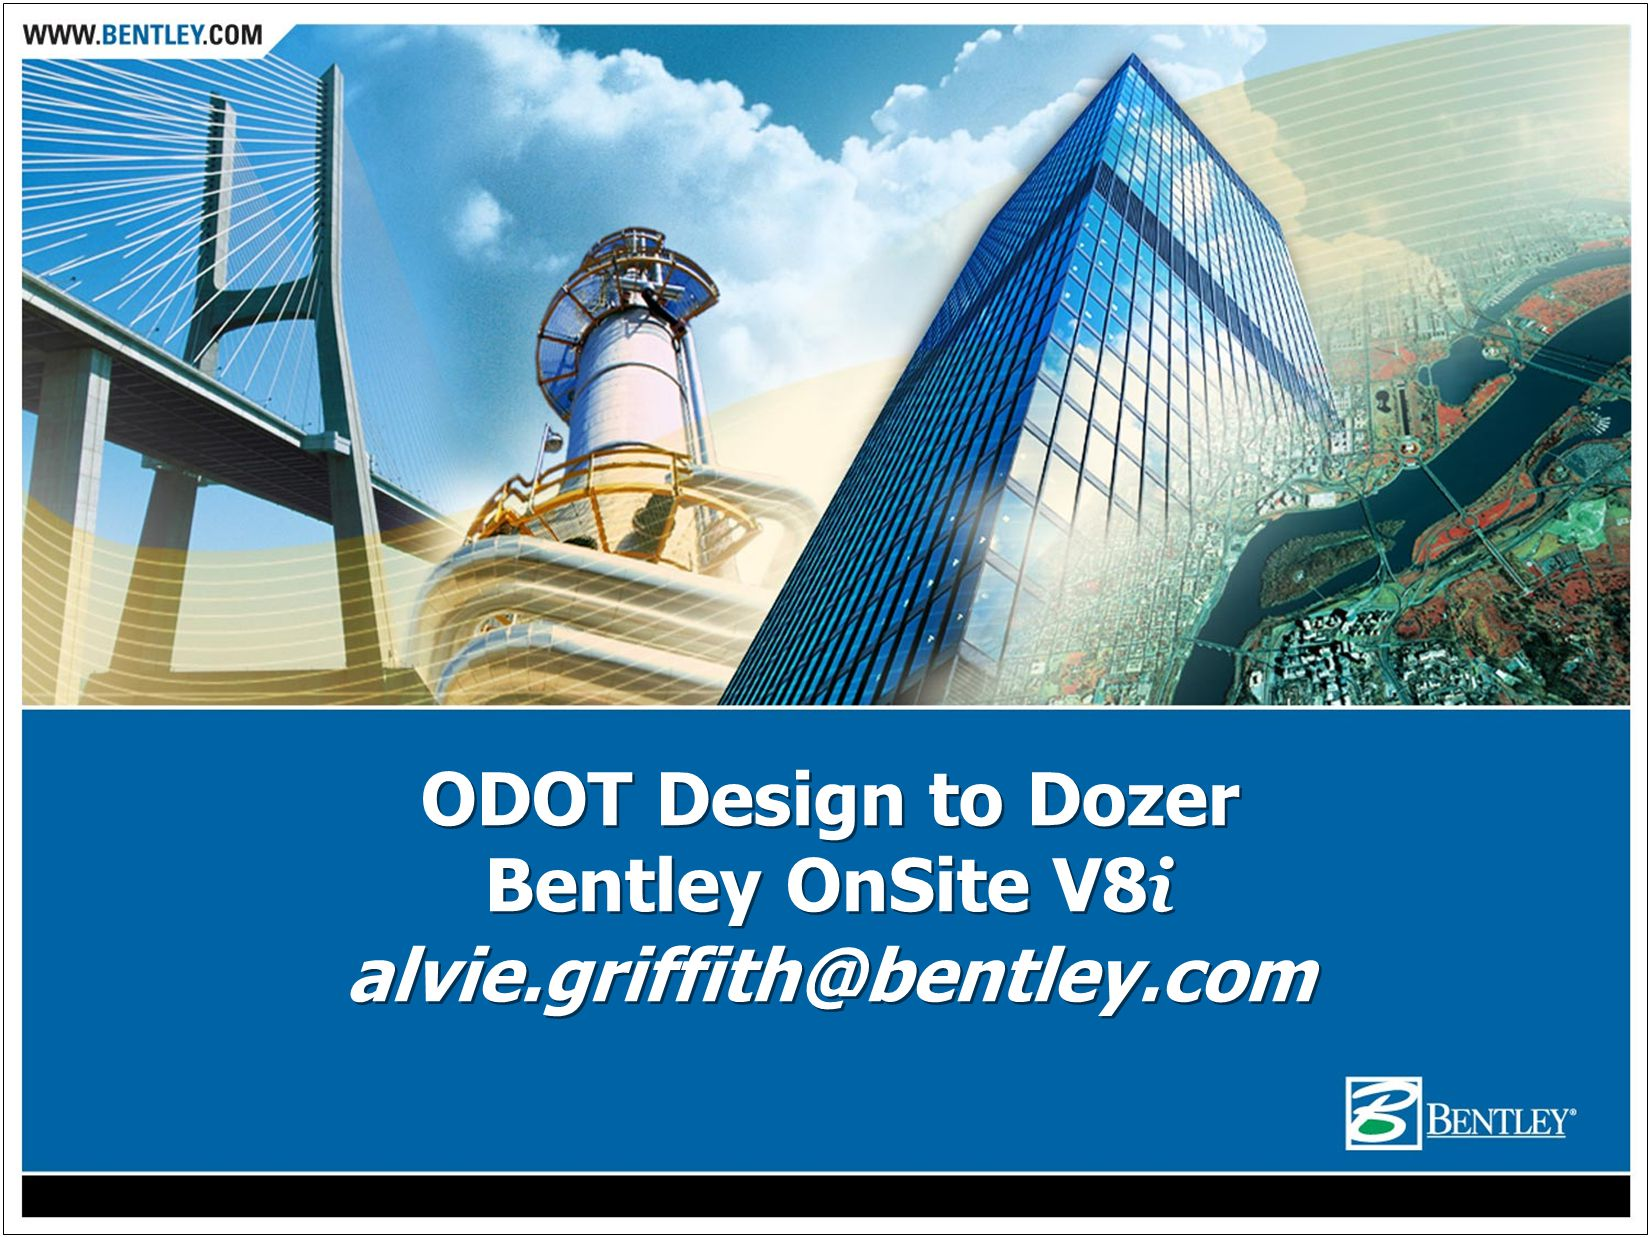 ODOT Design to Dozer Bentley OnSite V8 i alvie.griffith@bentley.com